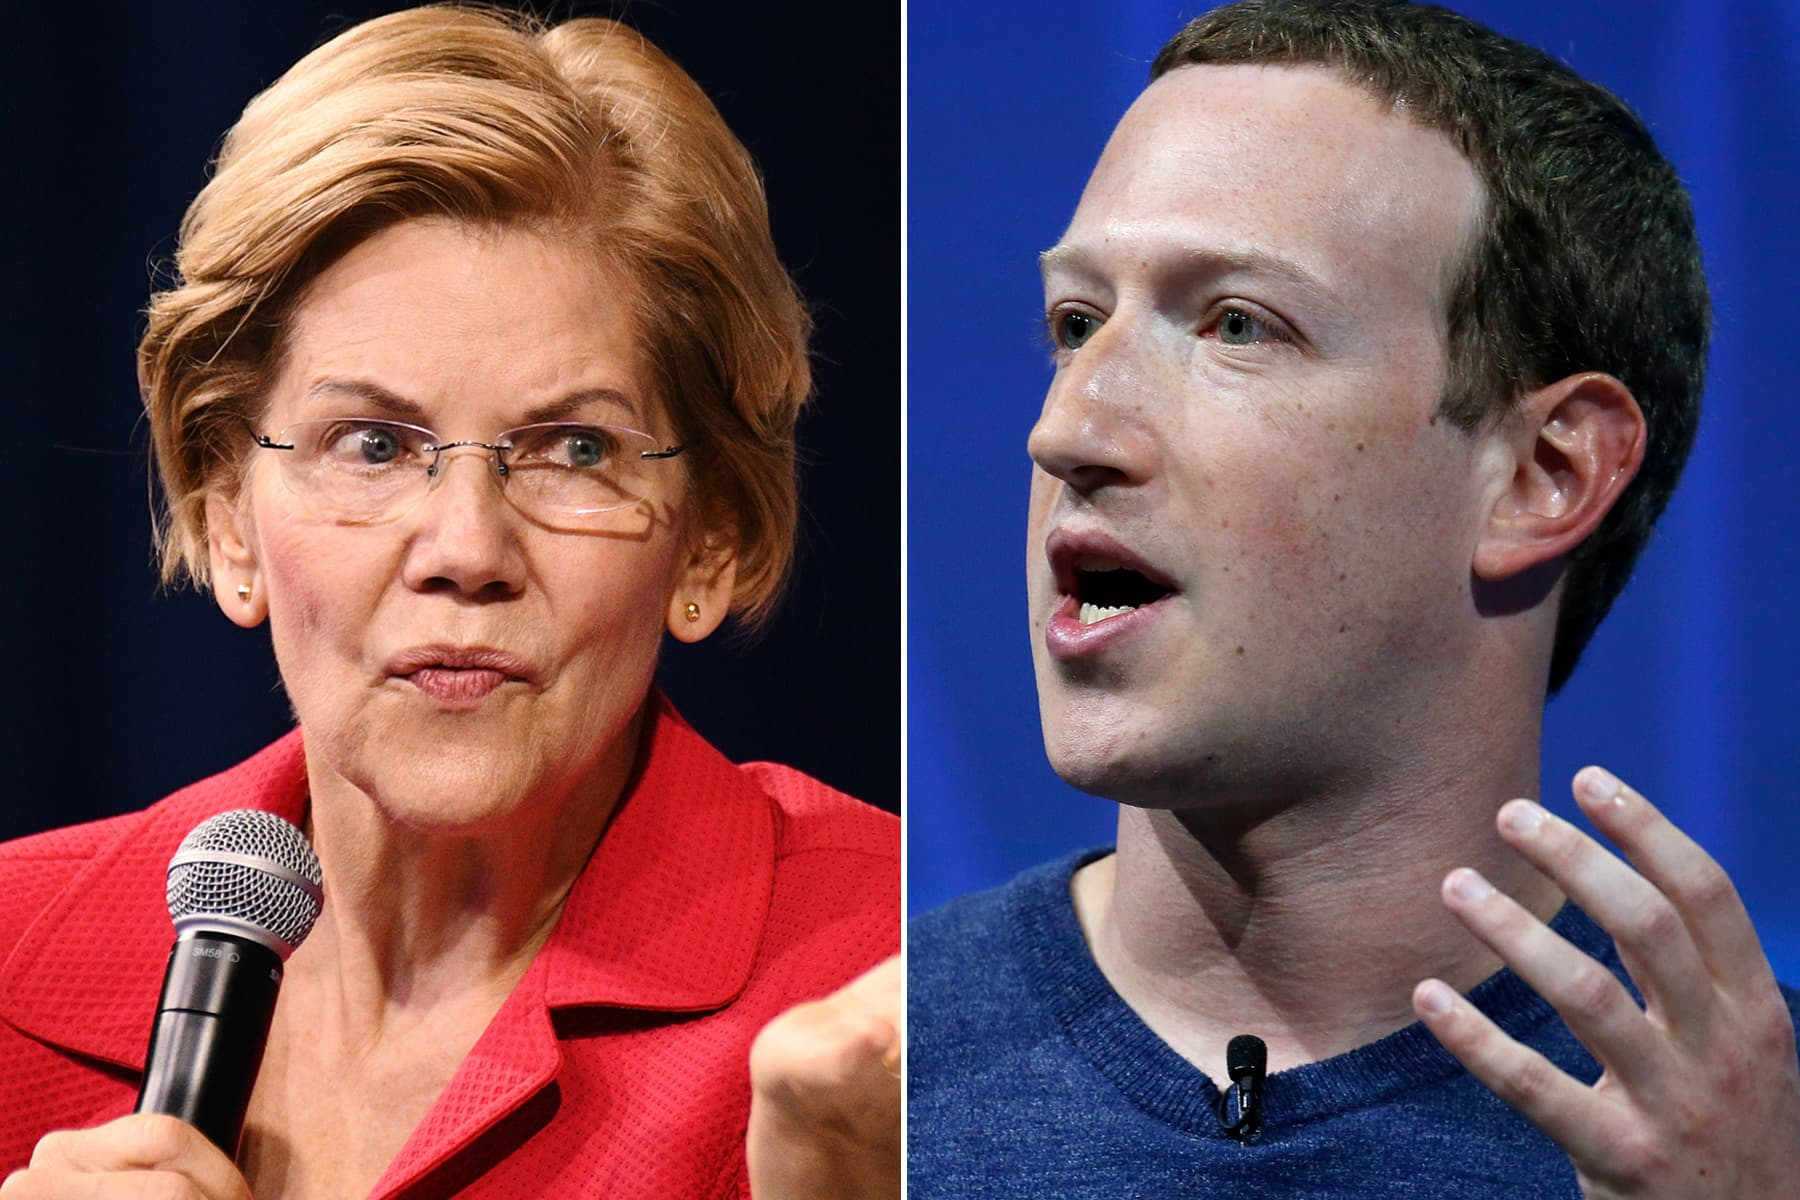 <b>Warren attacks Facebook for 'quietly' changing its political ad policy after Zuckerberg's meeting with Trump</b>